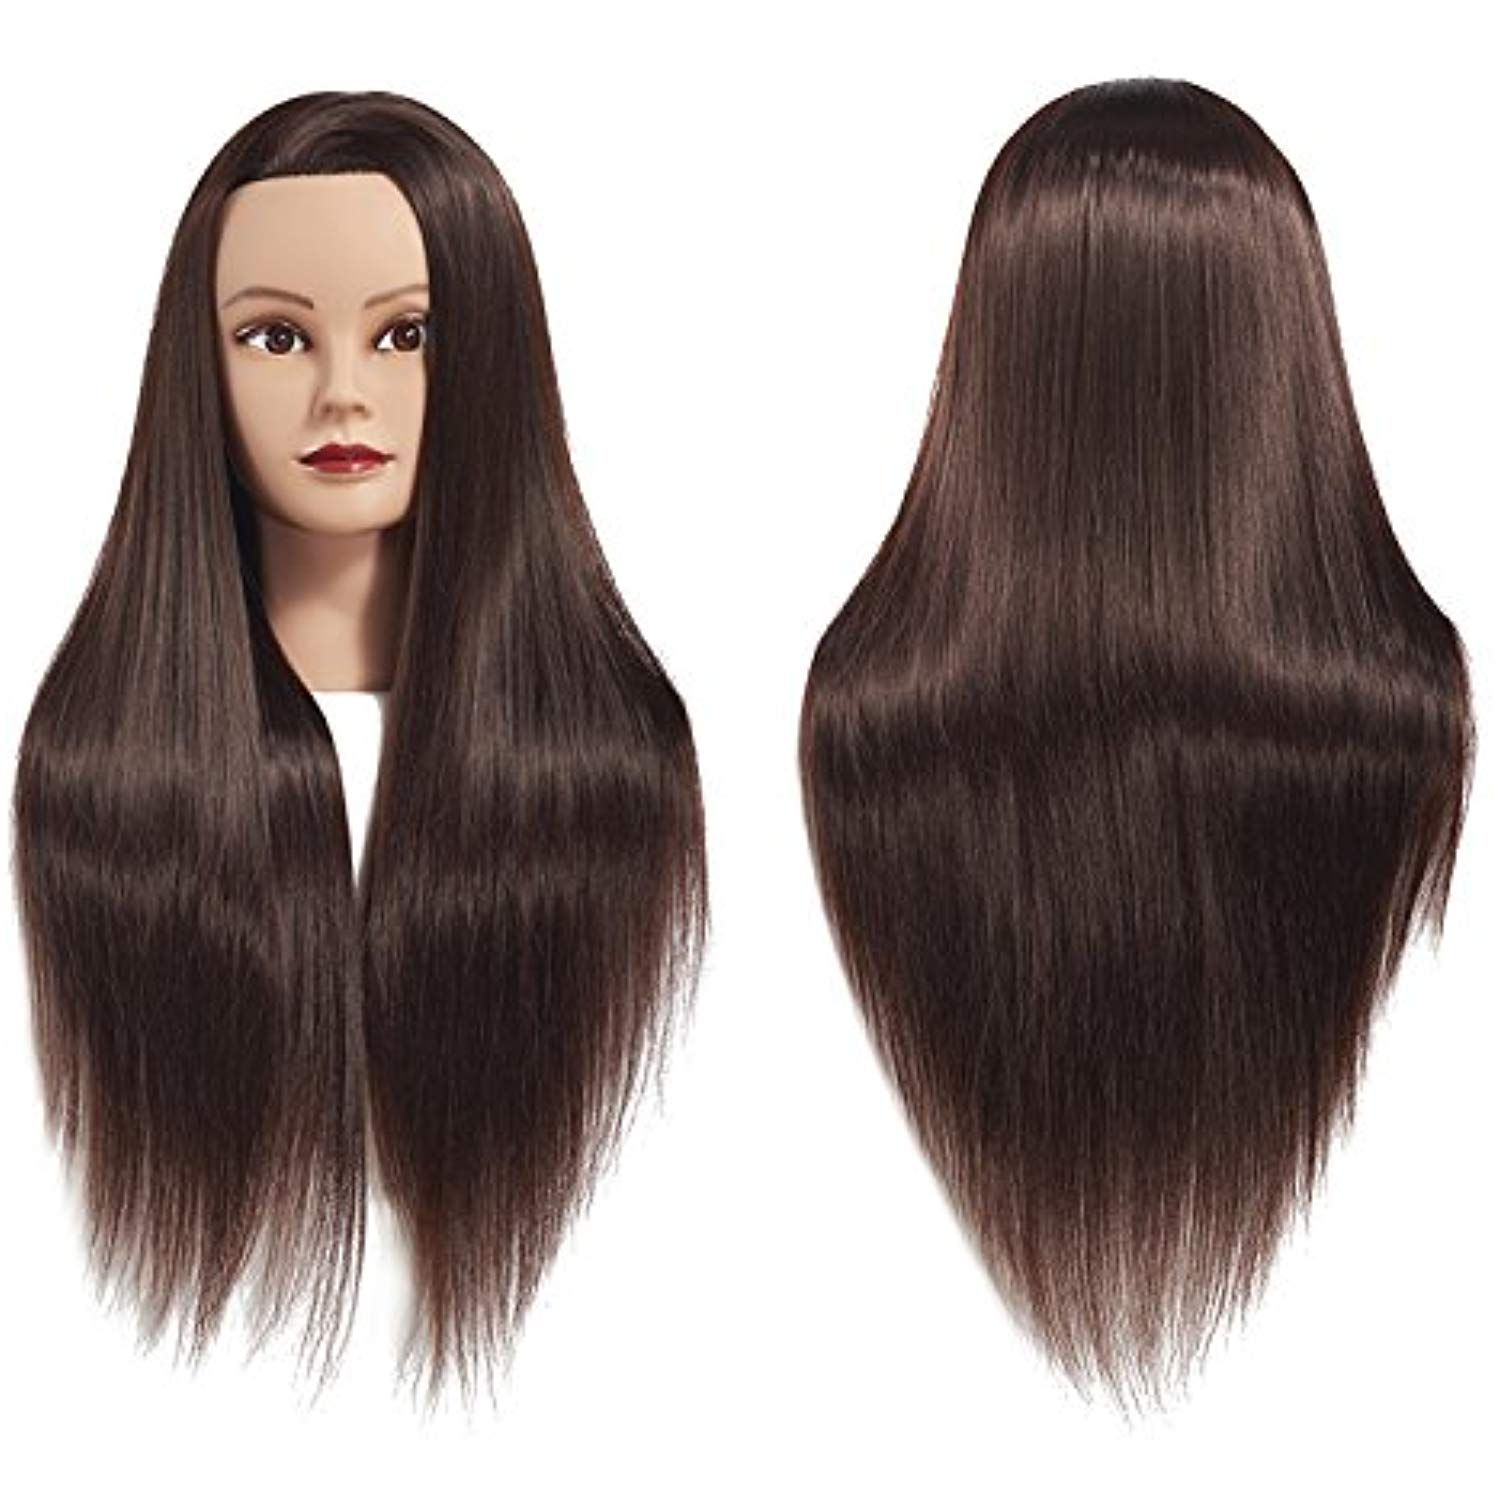 26 28 Mannequin Head Hair Styling Training Head Manikin Cosmetology Doll Head Synthetic Fiber Hair Hairdressing Training Head Hair Hair Mannequin Hair Styles